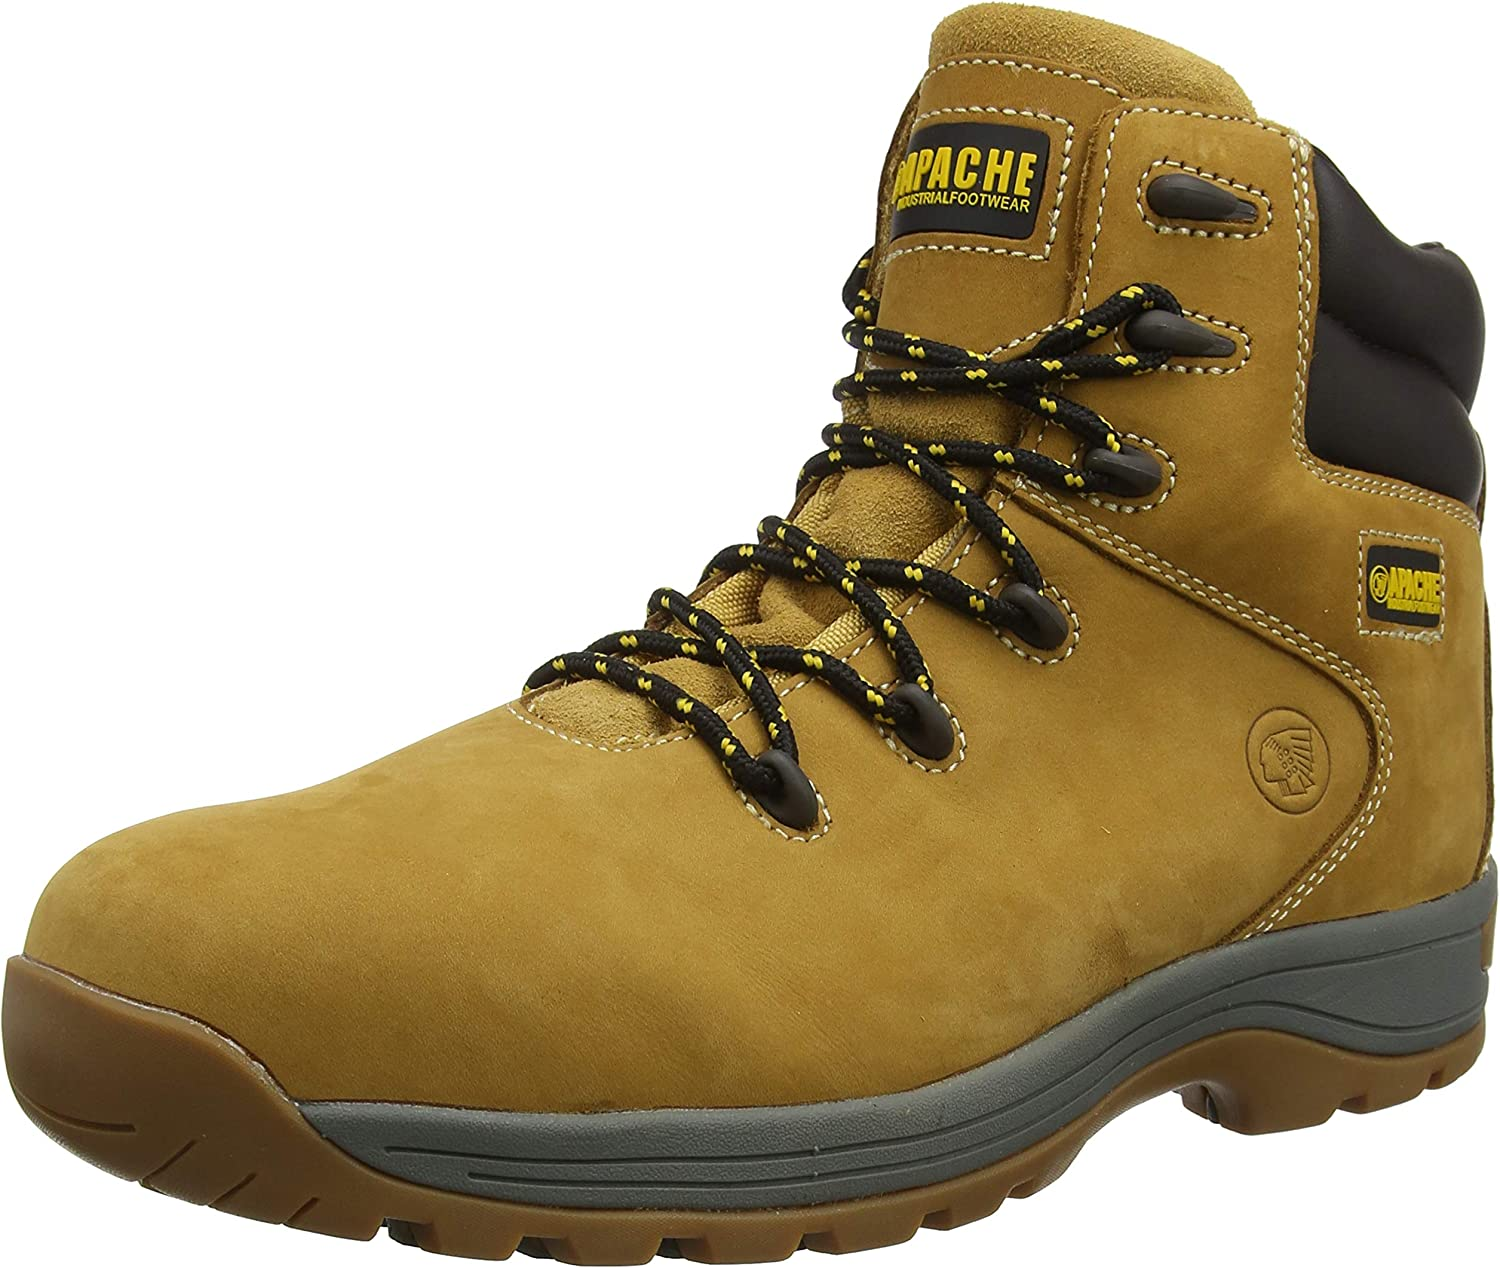 Apache Unisex-Adult AP314CM Safety Boots Wheat 11 UK Wide